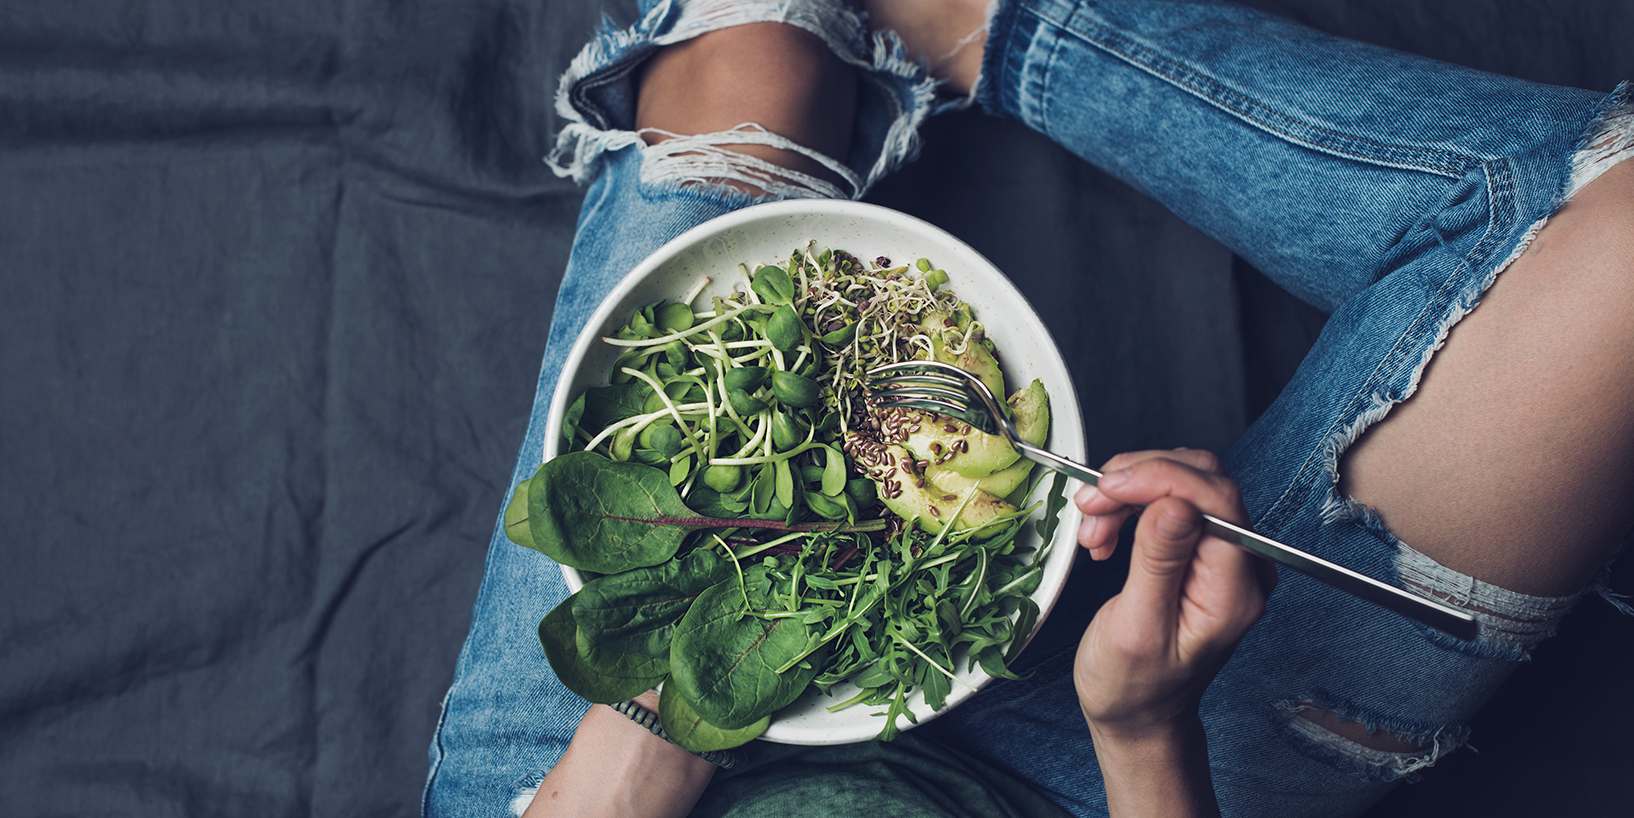 woman with ripped jeans eating a healthy salad with healthy fats like avocados